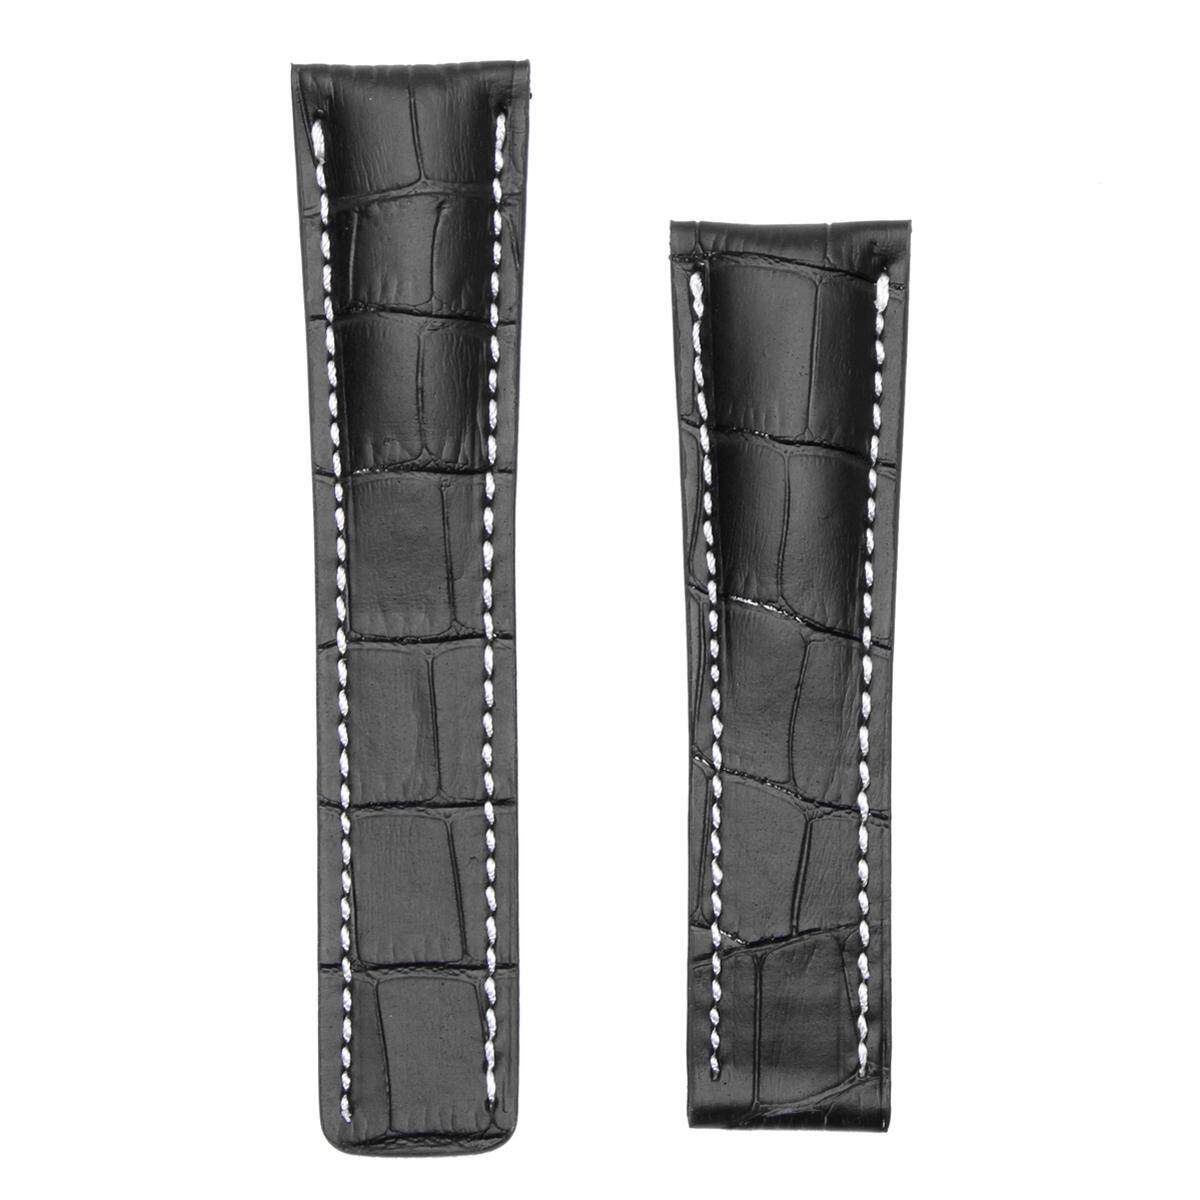 [black 24mm]BOB Alligator Style Deployment Strap for Breitling, 20-24 mm, 11 colors, new! - intl